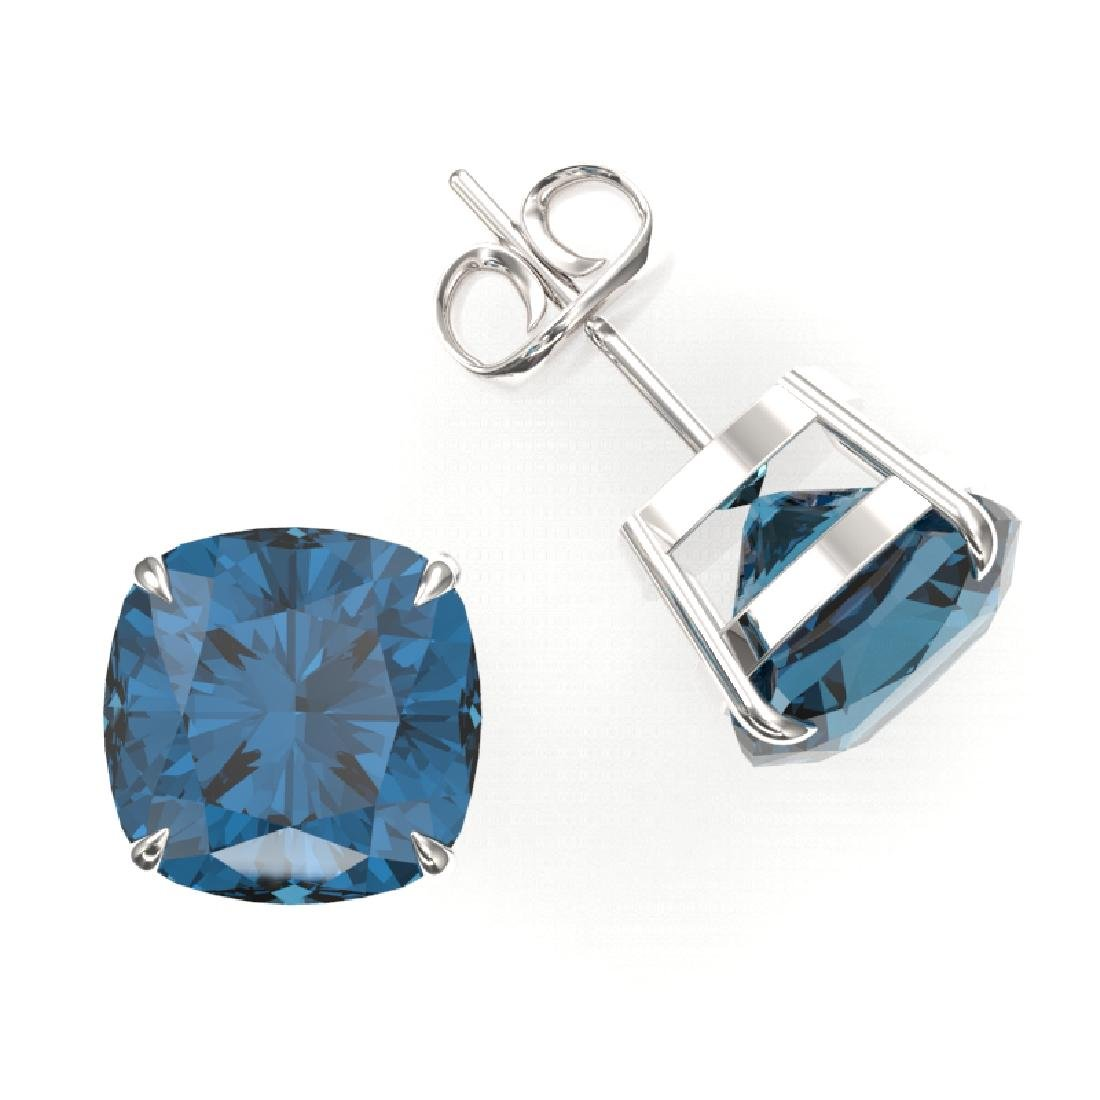 12 CTW Cushion Cut London Blue Topaz Designer Stud - 2